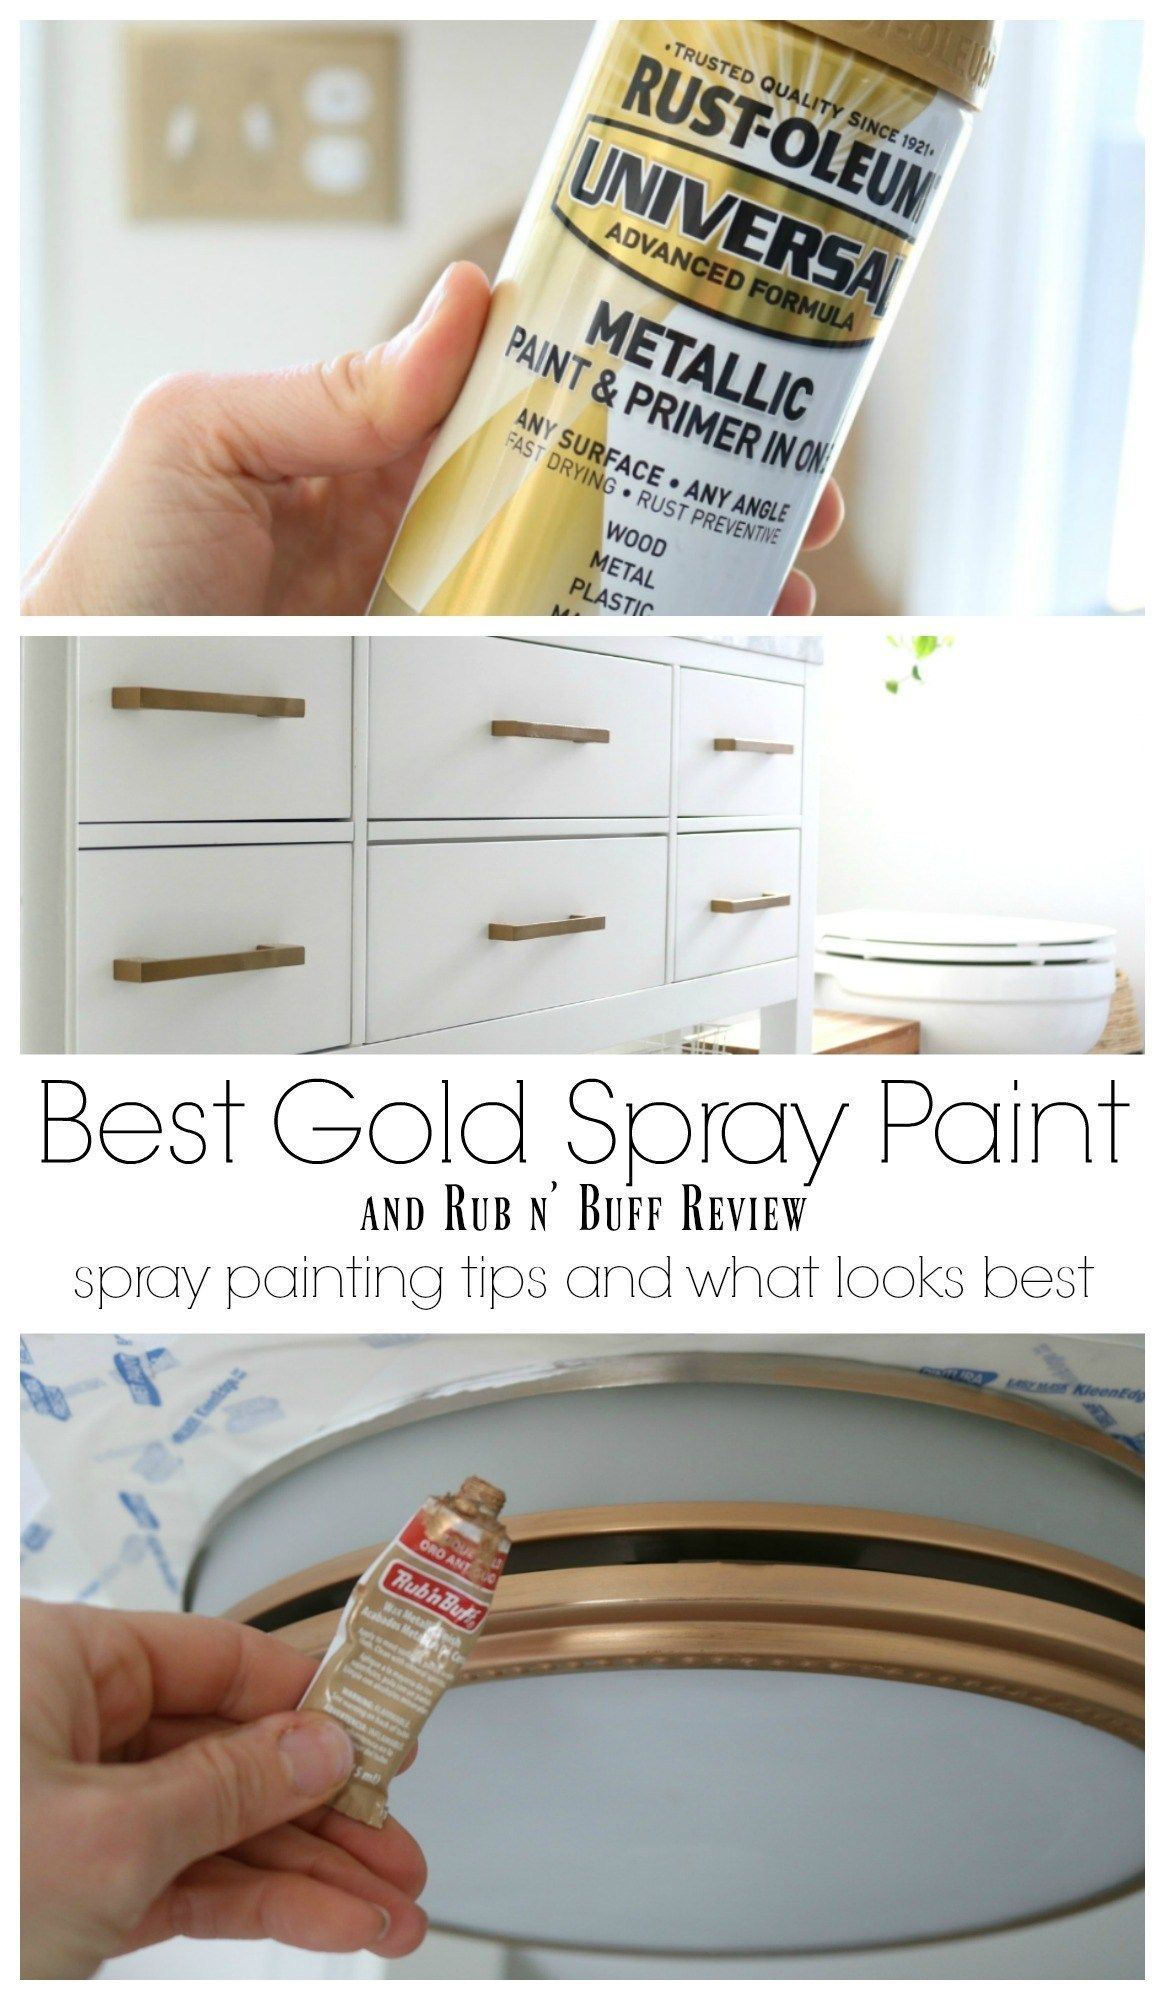 Favorite Spray Paint and Rub n' Buff Experience is part of Spray painting wood furniture, Best gold spray paint, Spray paint furniture, Spray paint tips, Spray paint colors, Spray painting light fixtures -